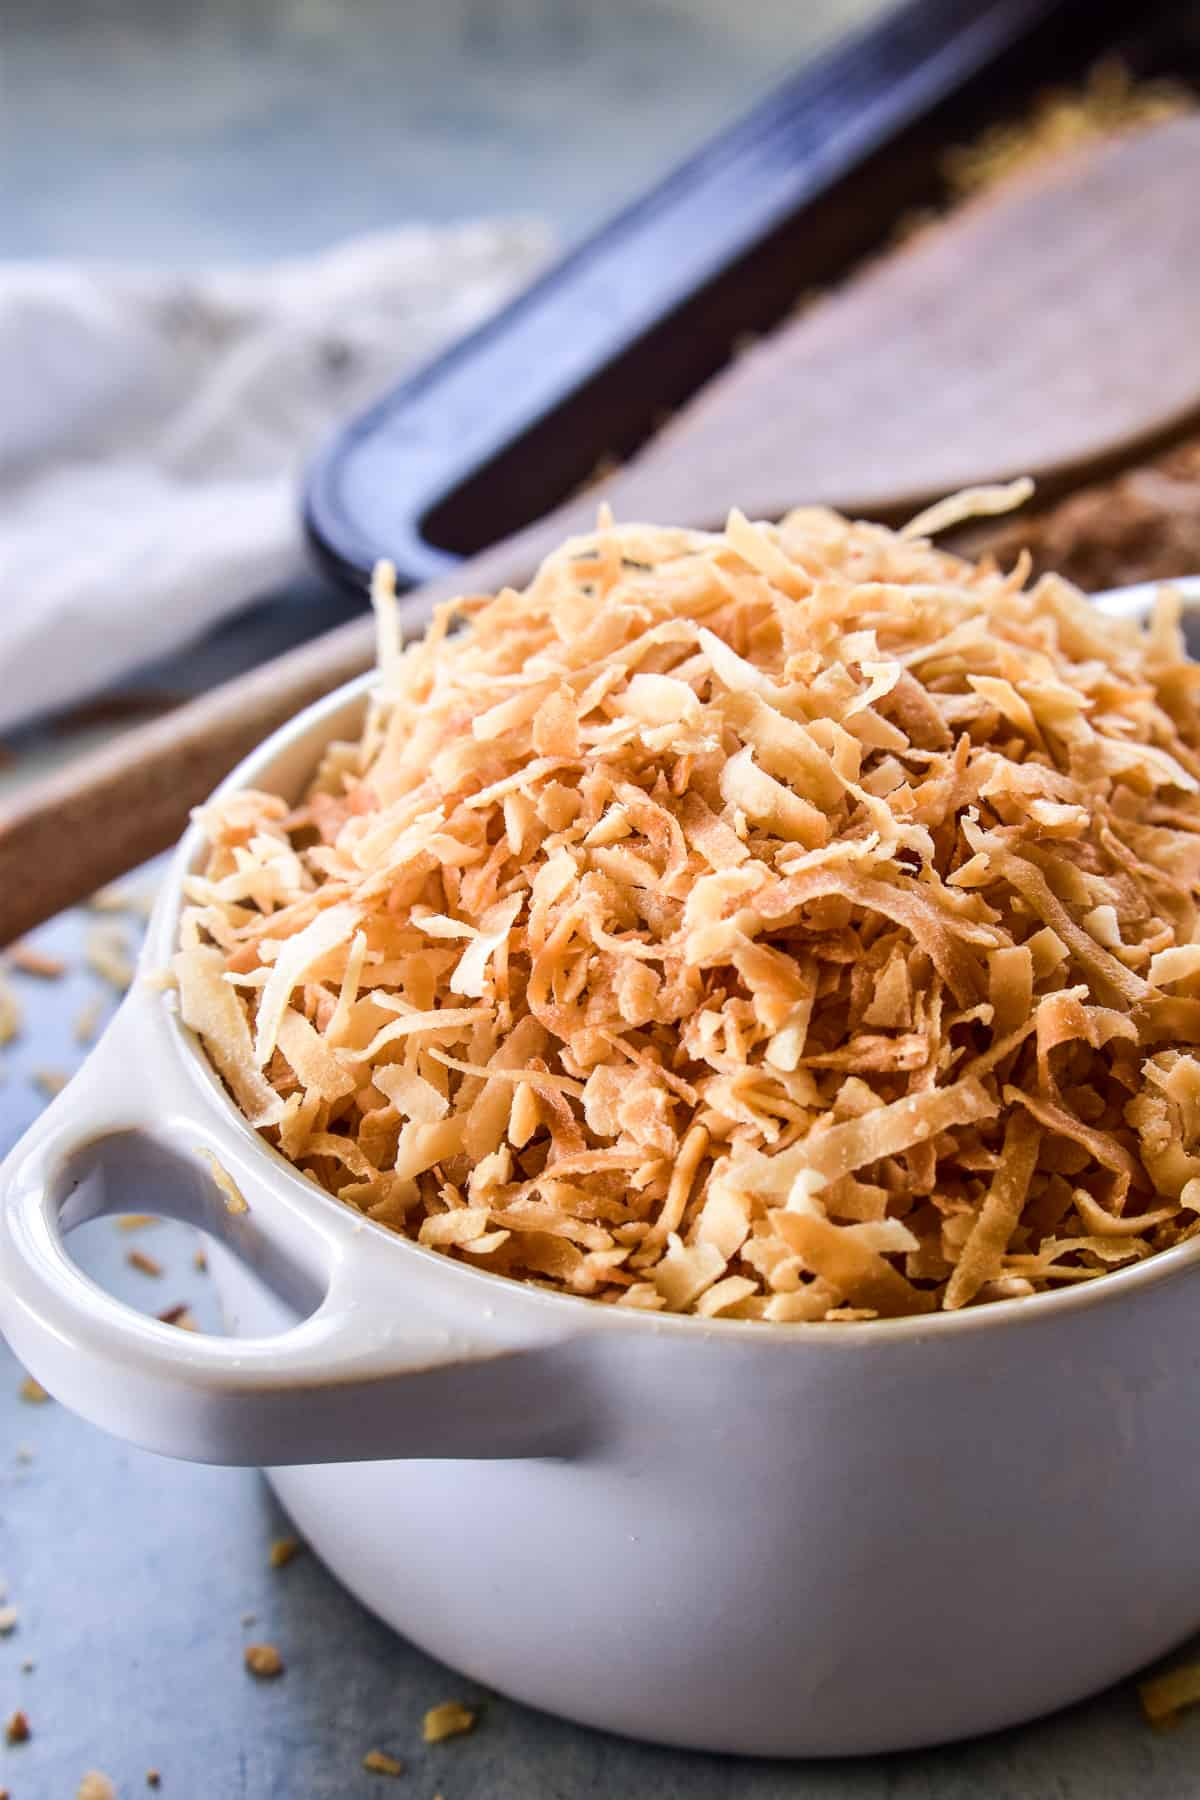 Toasted Coconut in a small white bowl